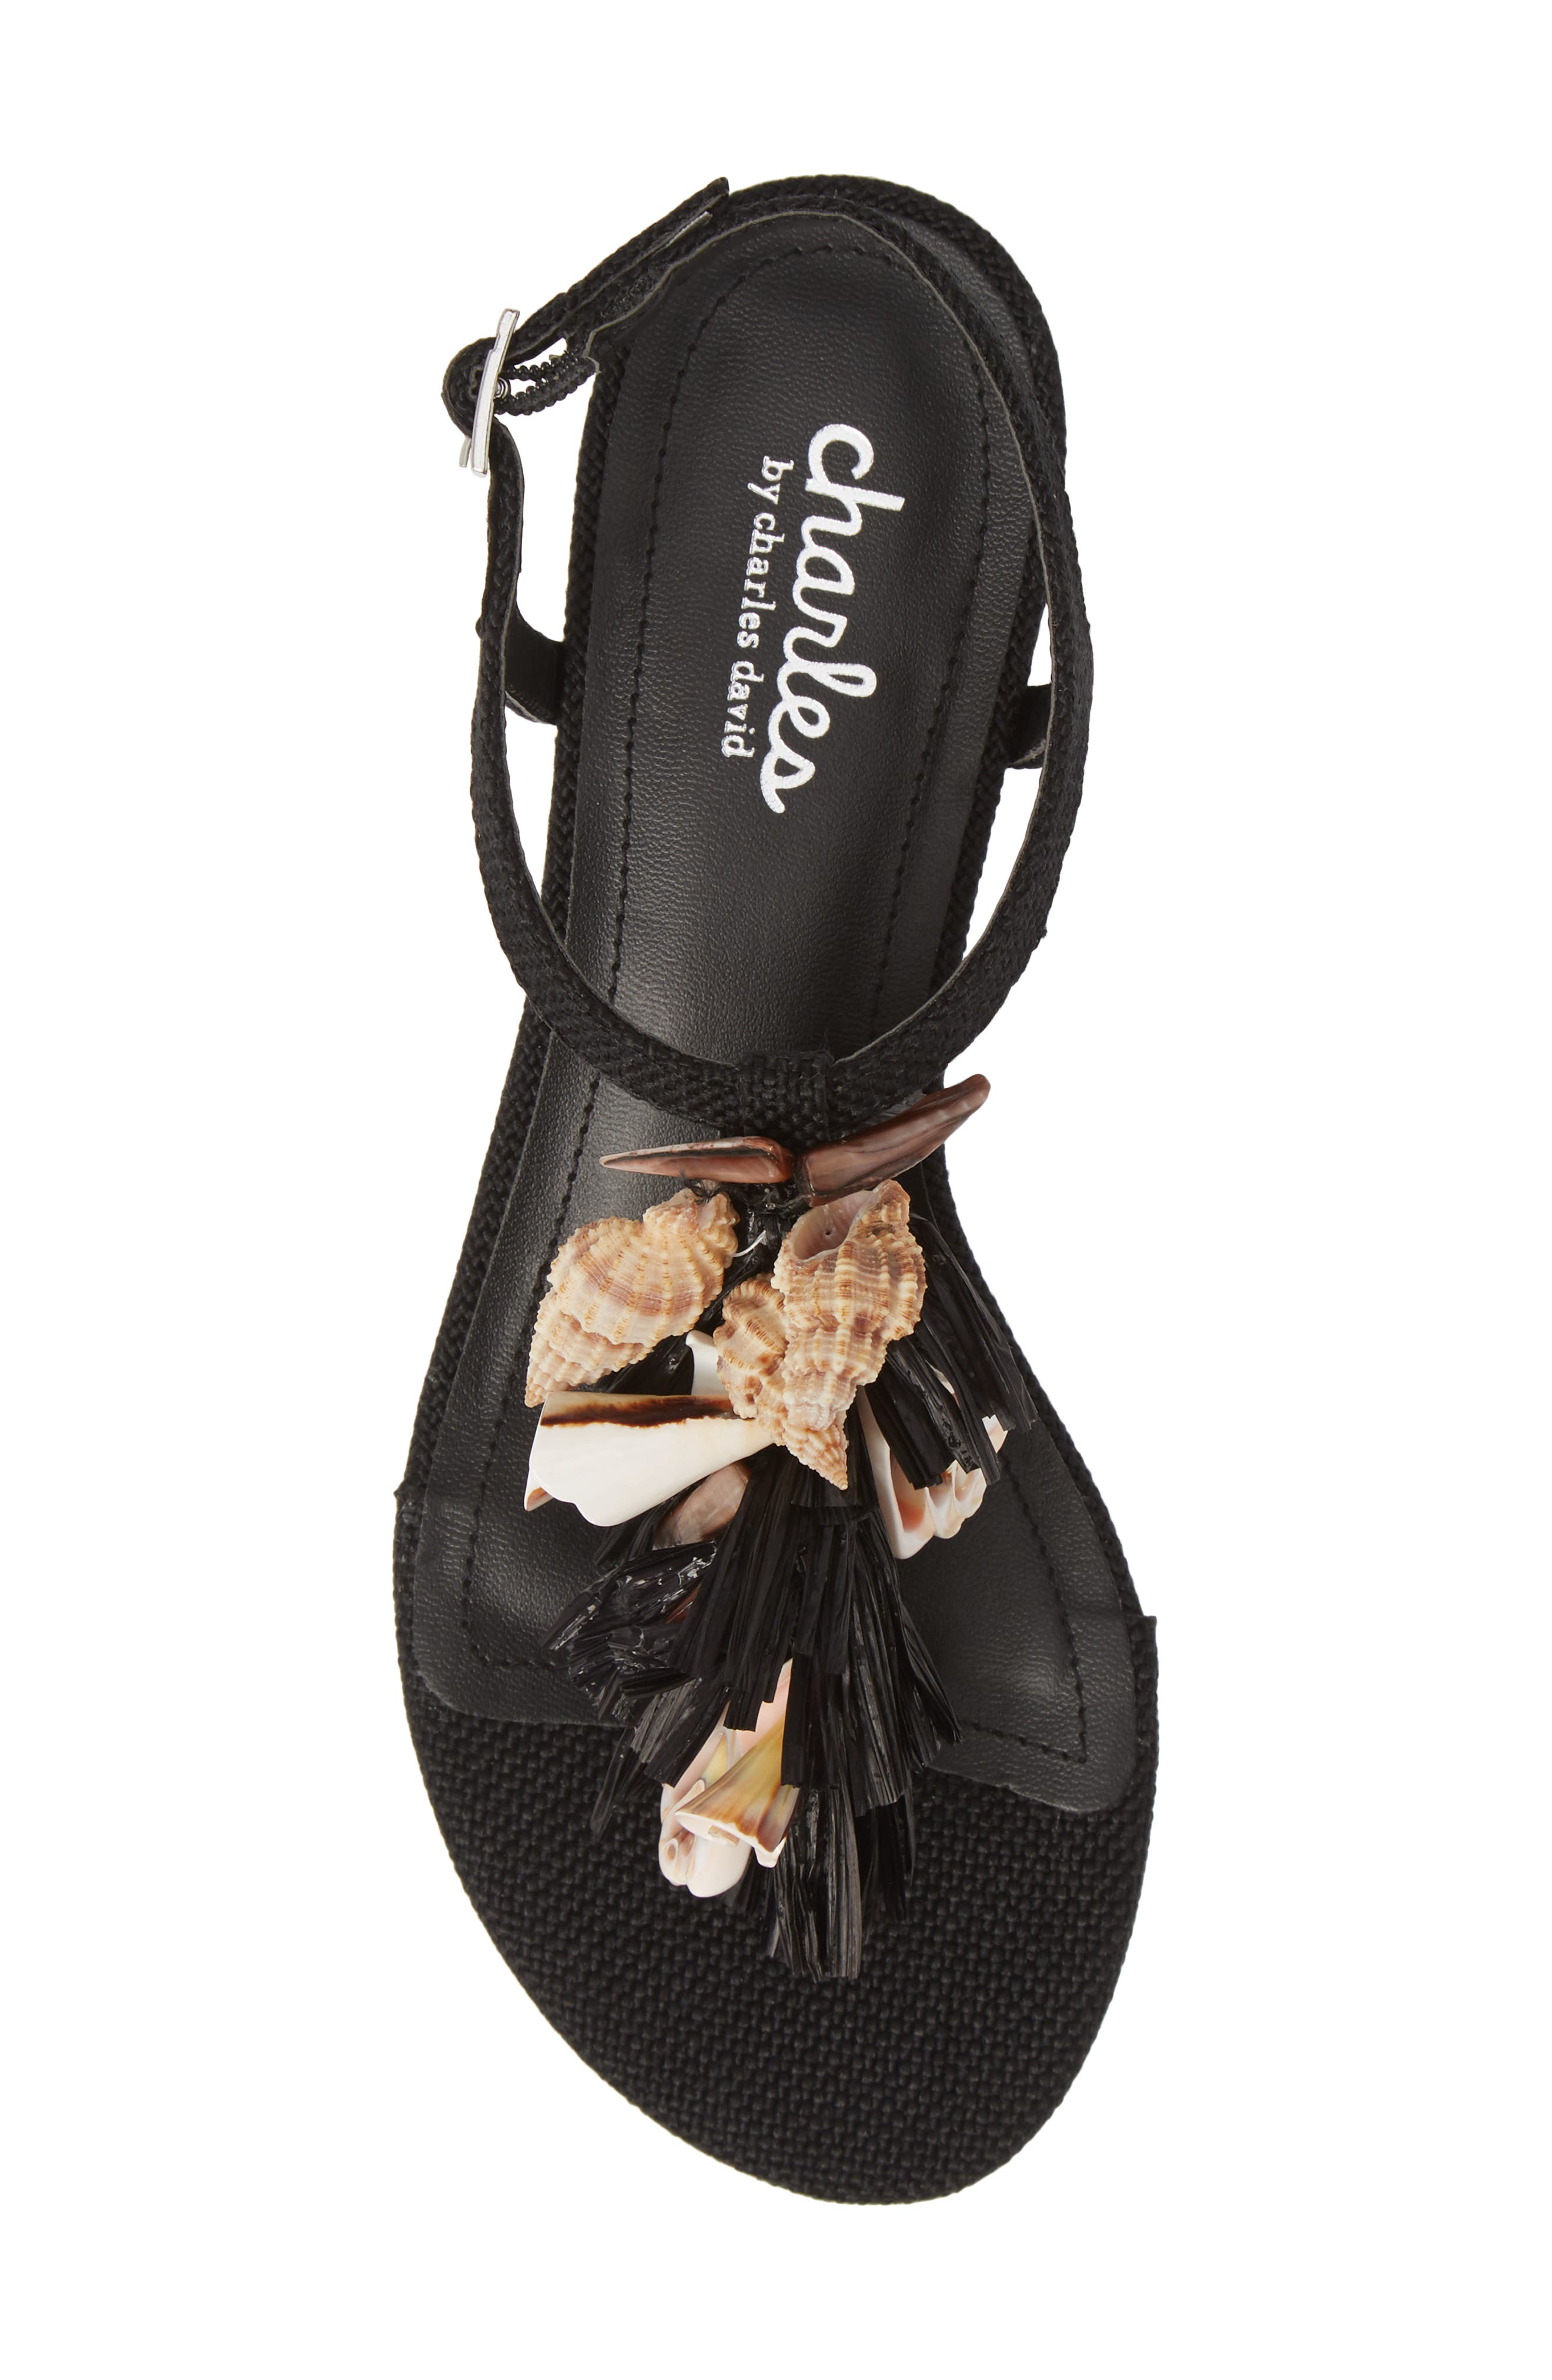 CHARLES BY CHARLES DAVID, Seashell Sandal, Alternate thumbnail 5, color, BLACK FABRIC